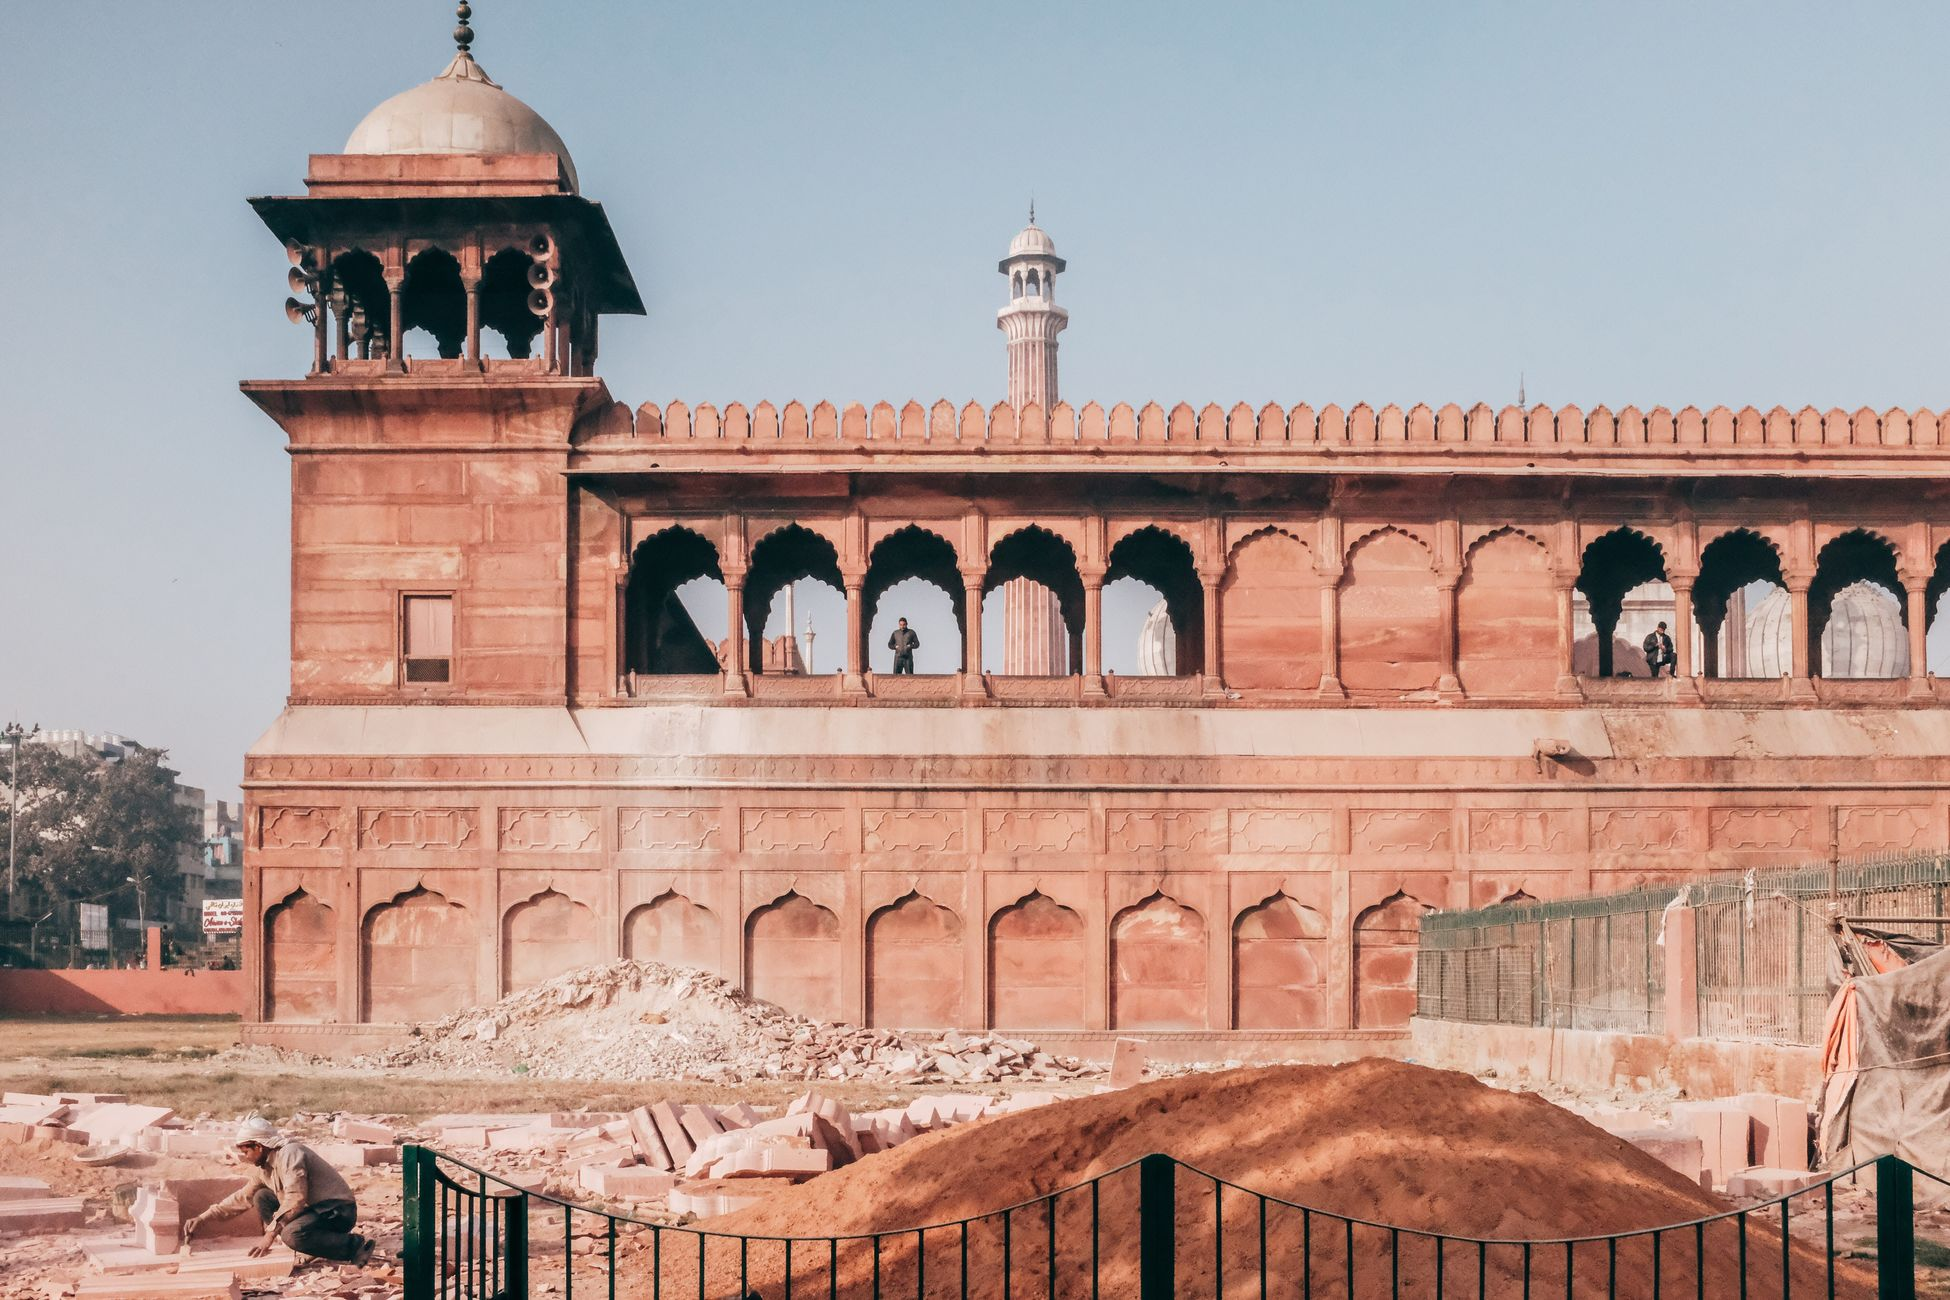 Jama Masjid. Old Delhi. India. 2016. Architecture Building Exterior Travel Destinations Place Of Worship Outdoors First Eyeem Photo Finding New Frontiers